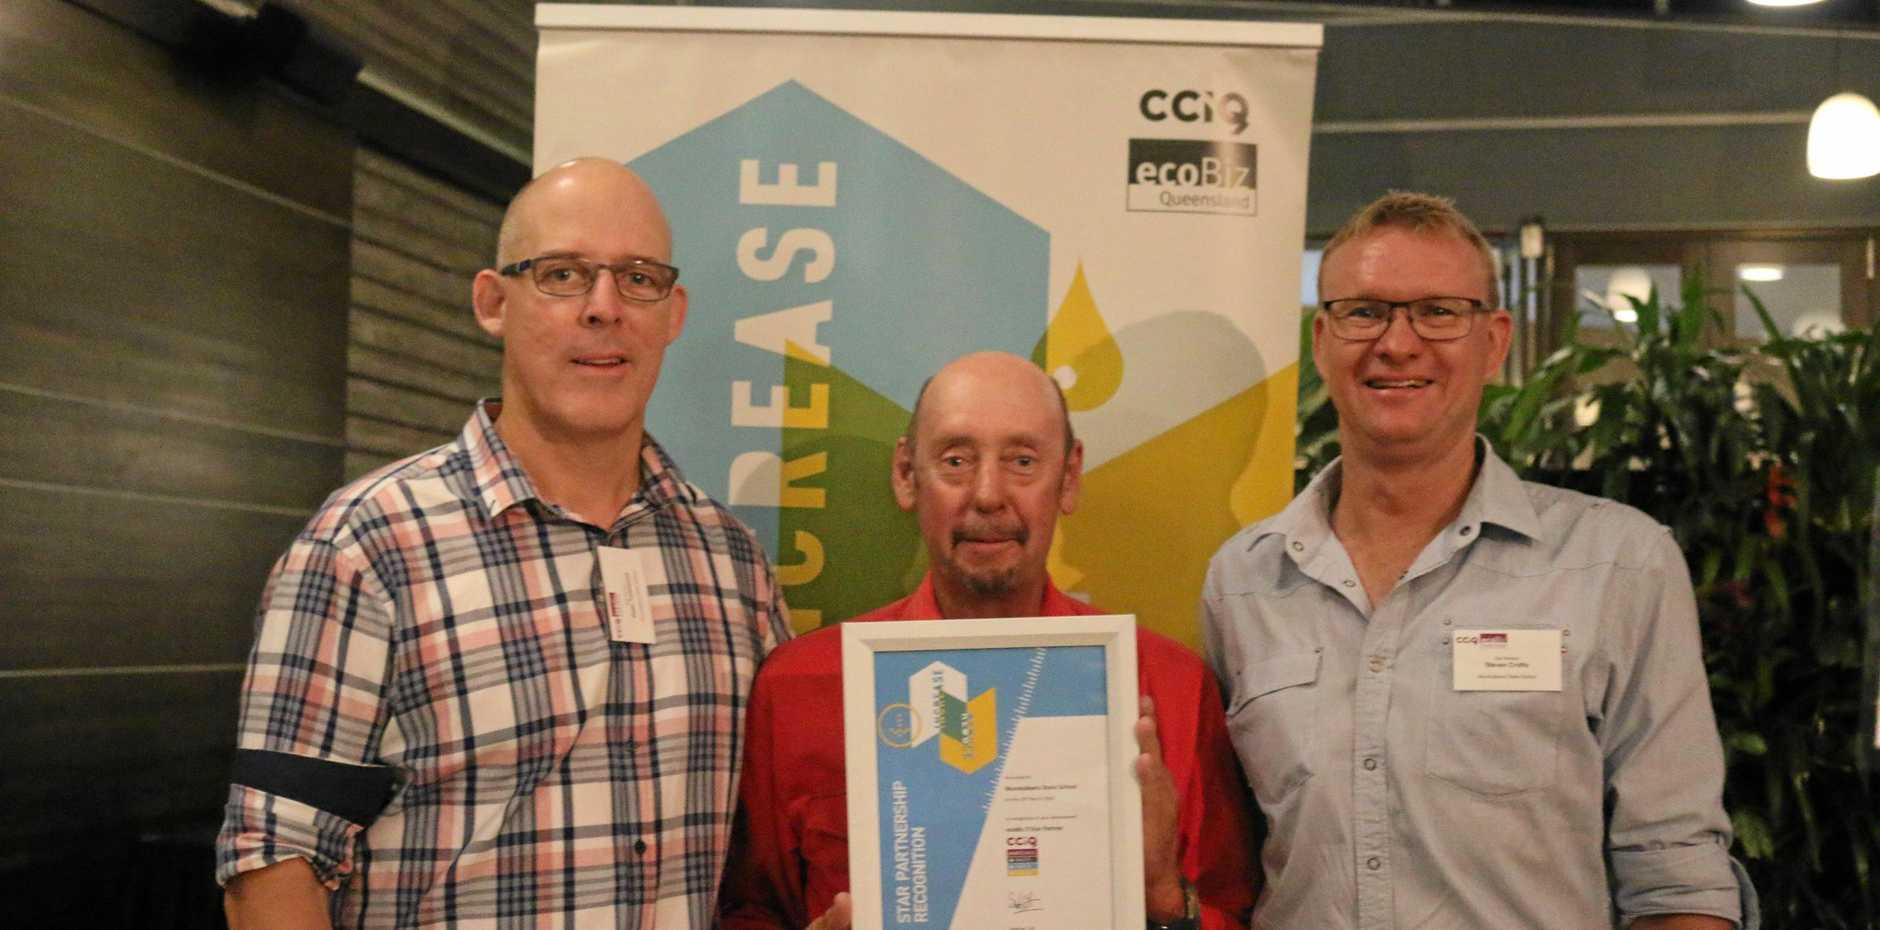 Peter Townsend, Wally Ford and Steve Crofts from Mundubbera State School.